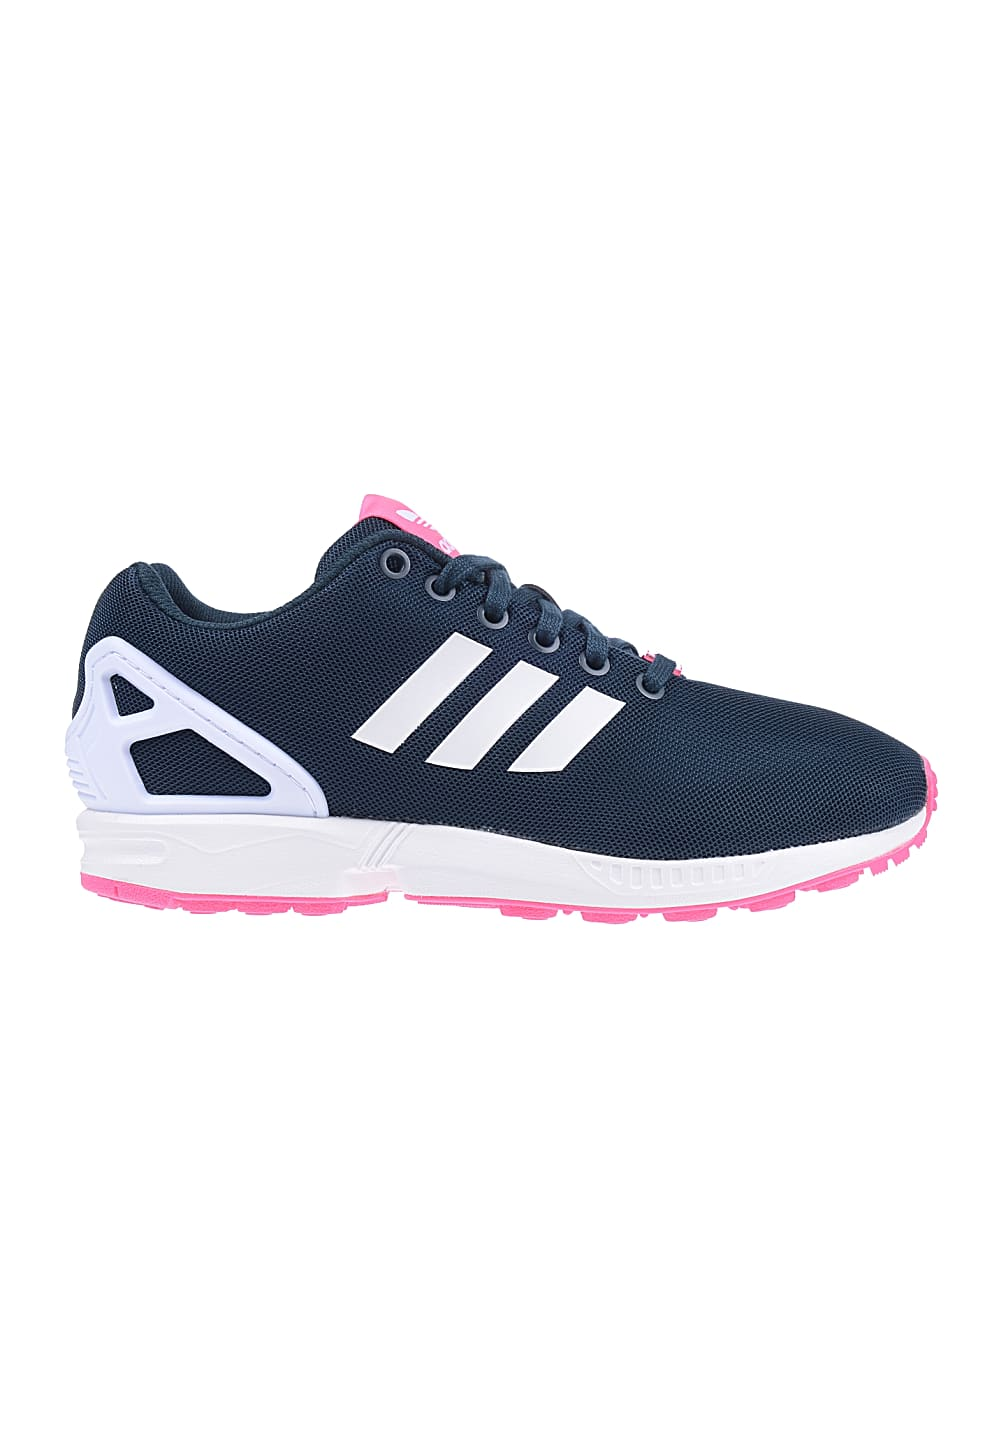 adidas zx flux sneaker f r damen blau planet sports. Black Bedroom Furniture Sets. Home Design Ideas